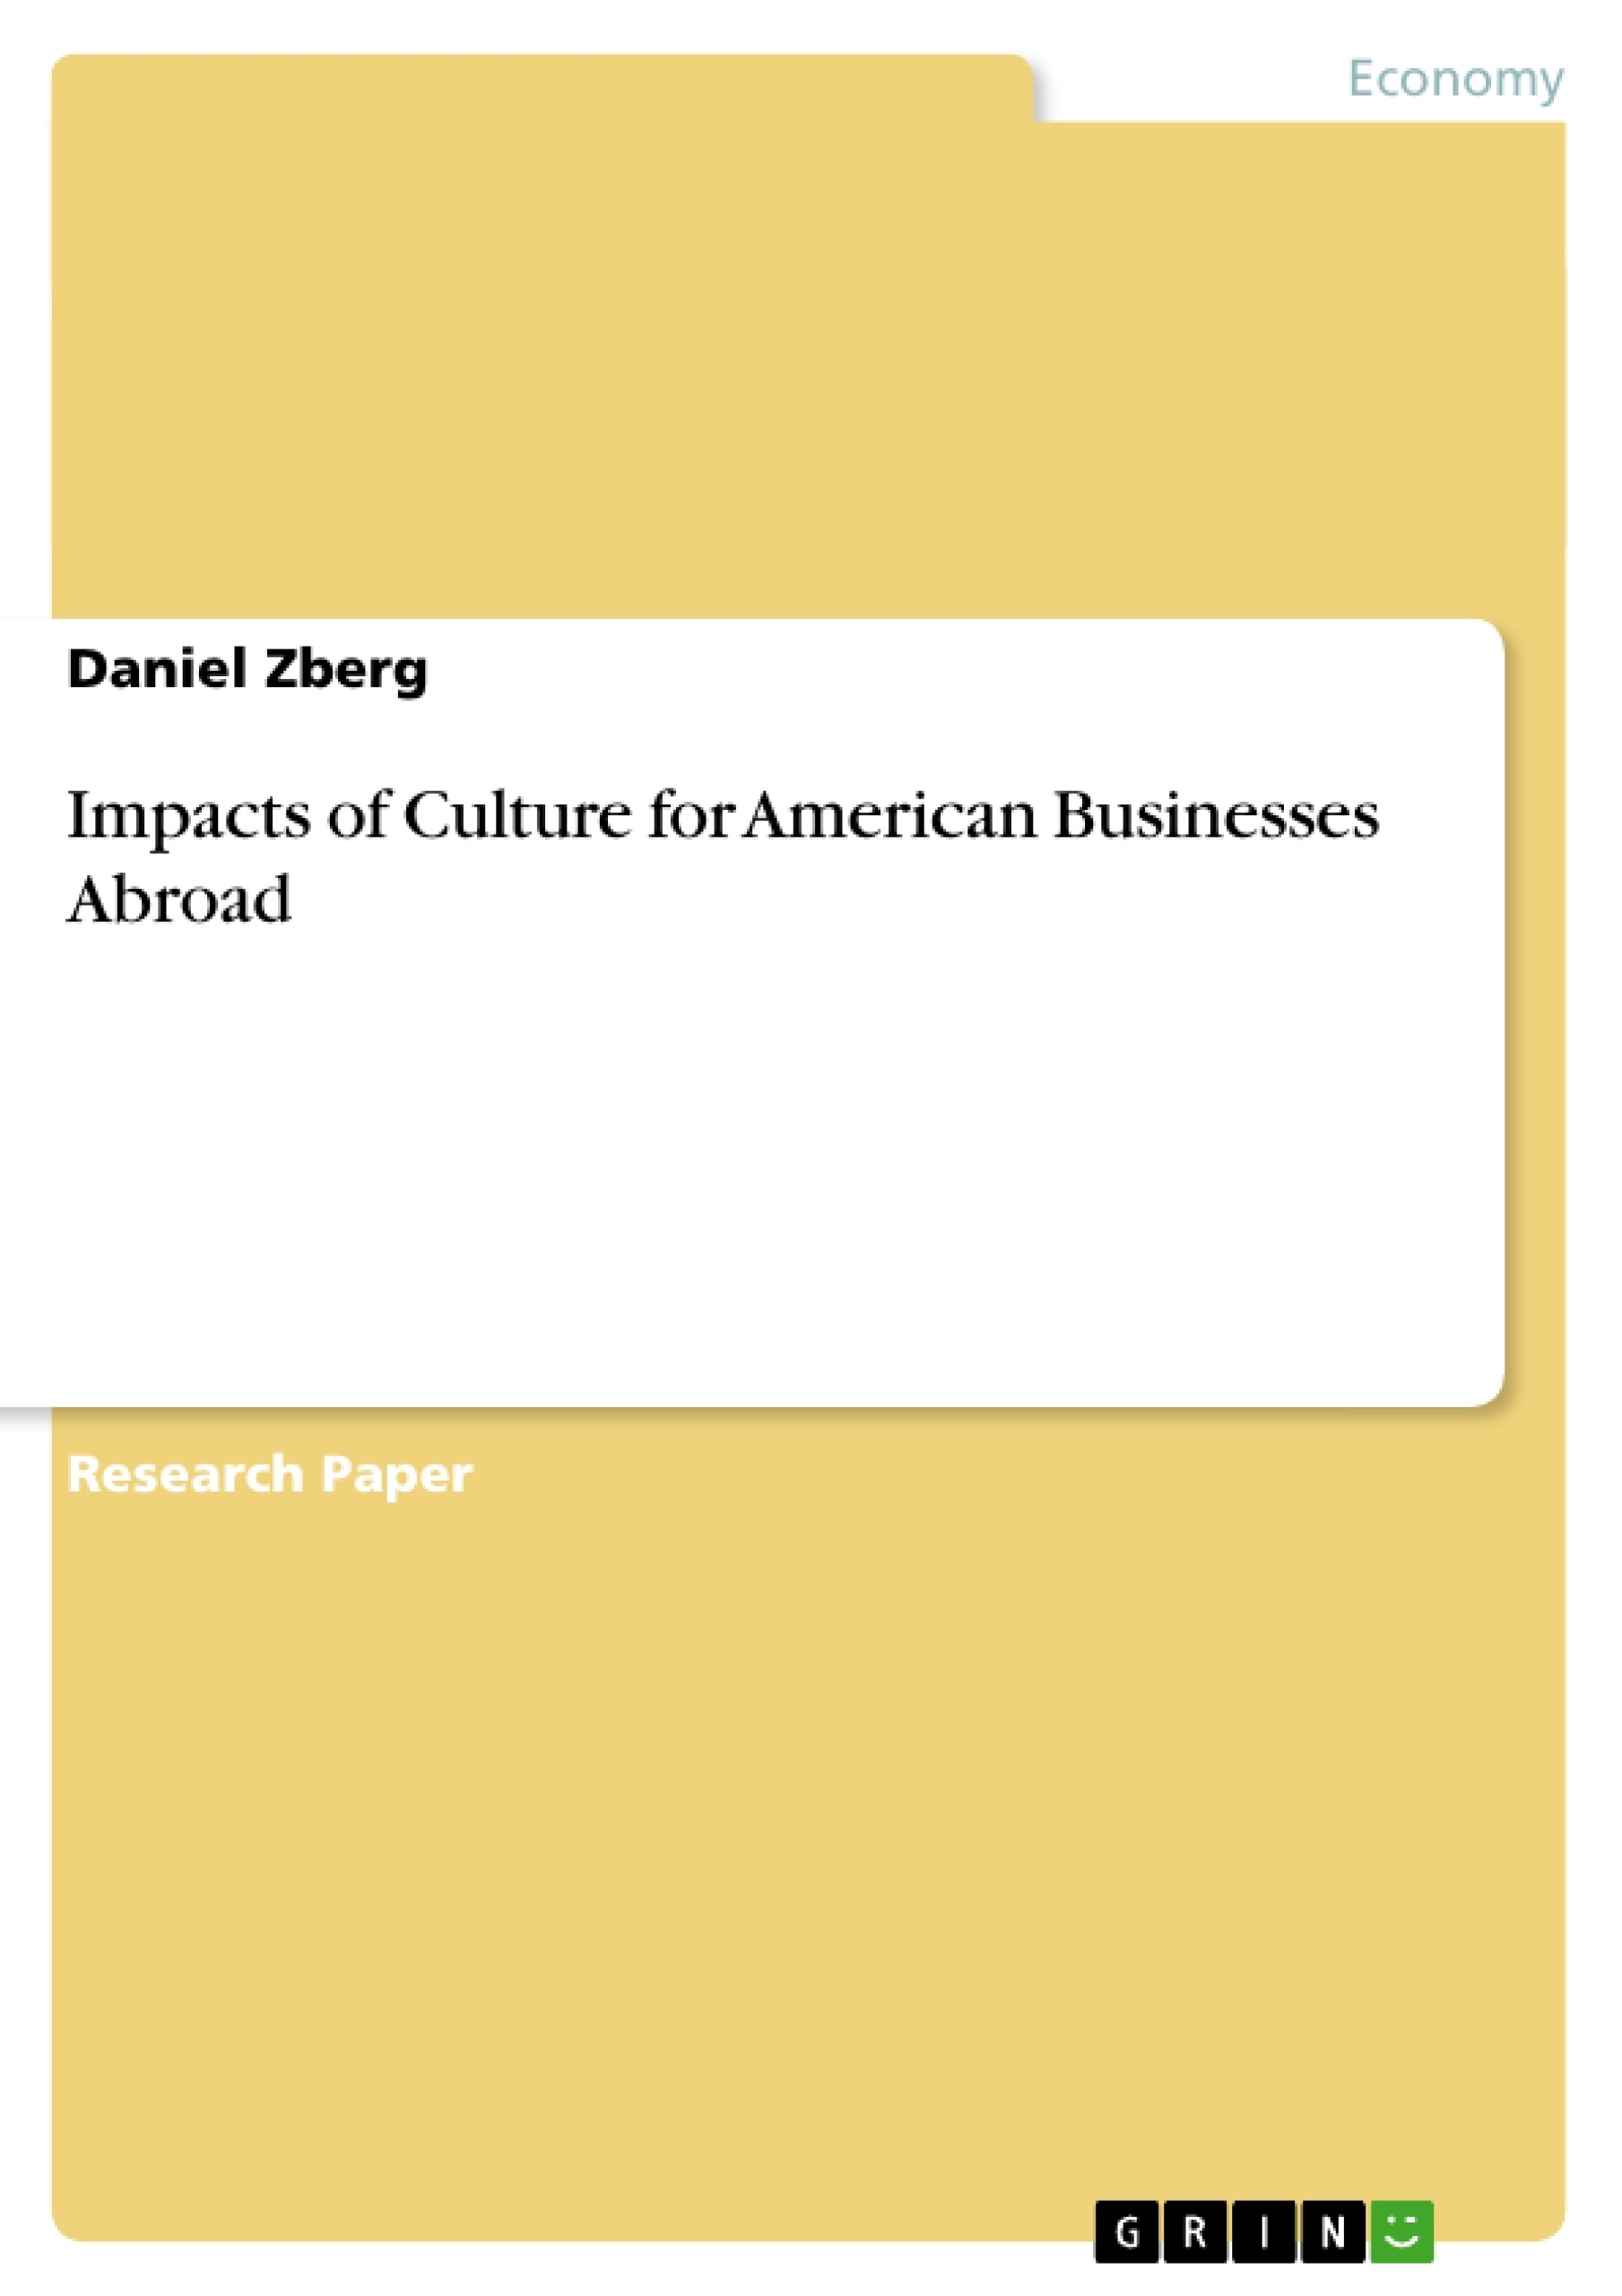 Title: Impacts of Culture for American Businesses Abroad